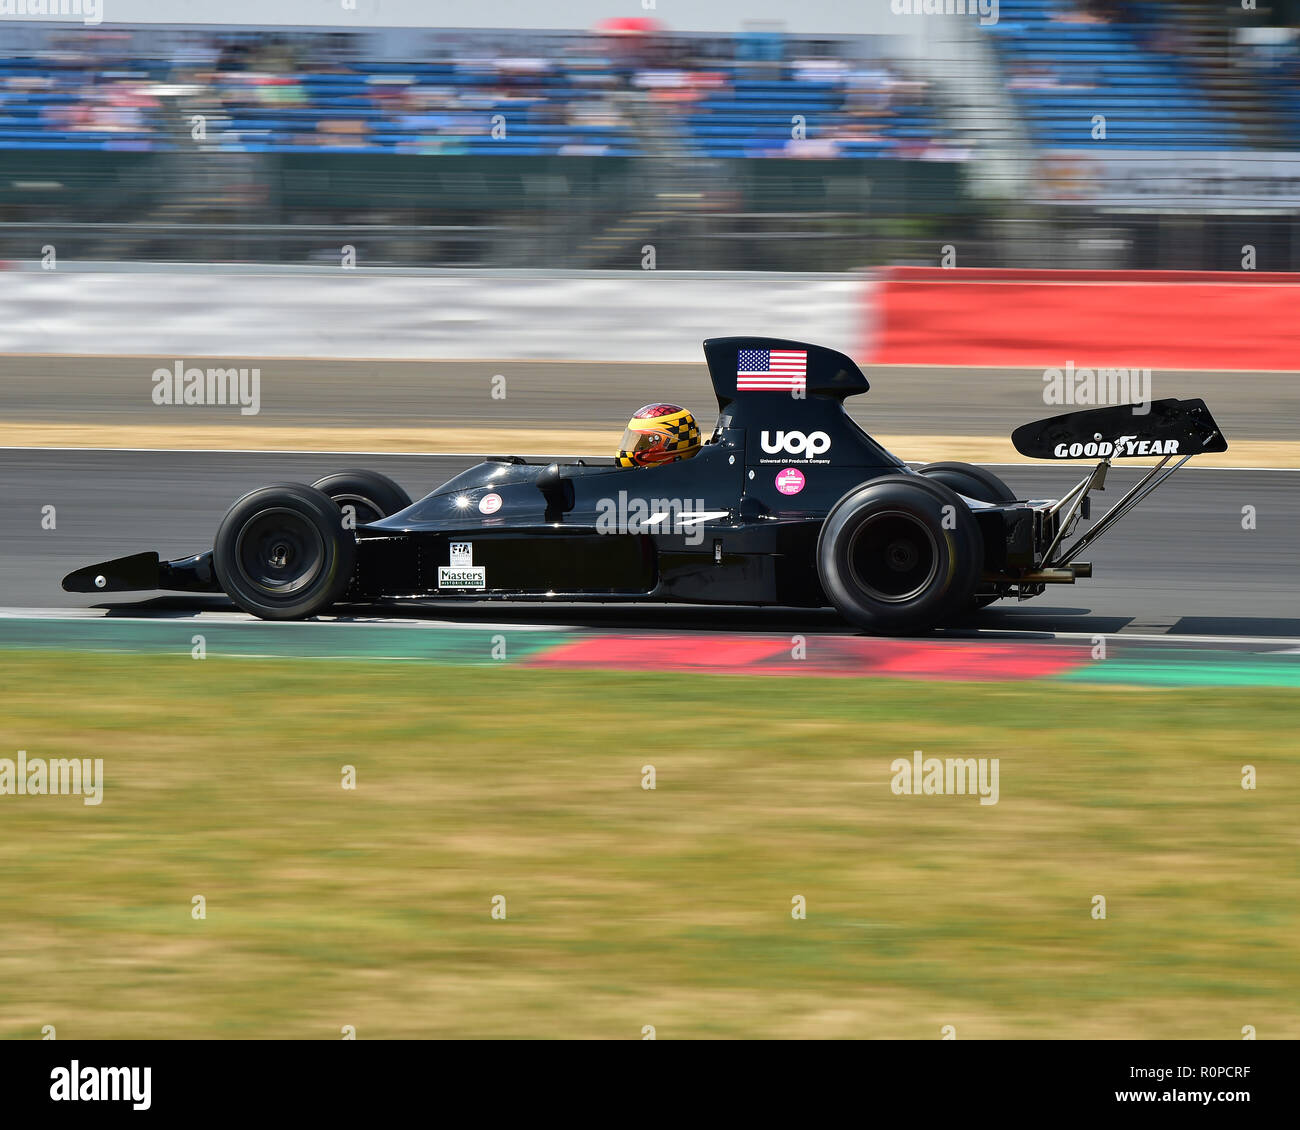 Keith Frieser, Shadow DN1, FIA Masters, Historic Formula One, F1, Formula 1, Silverstone Classic, July 2018, Silverstone, Chris McEvoy, circuit racing - Stock Image